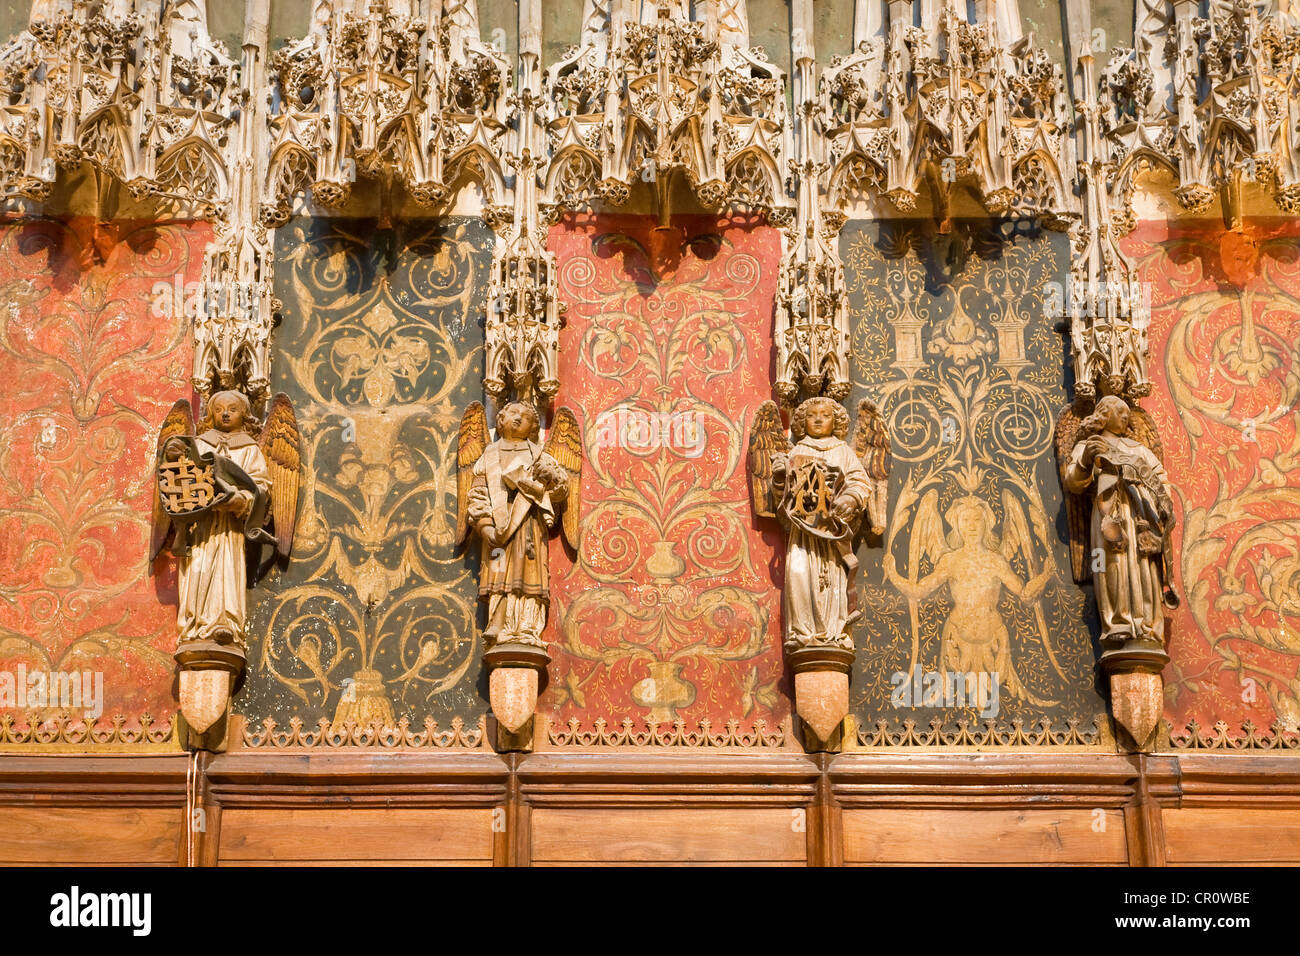 France Tarn Albi episcopal city listed as World Heritage by UNESCO sculptural detail of Stal of chancel of cathédrale - Stock Image